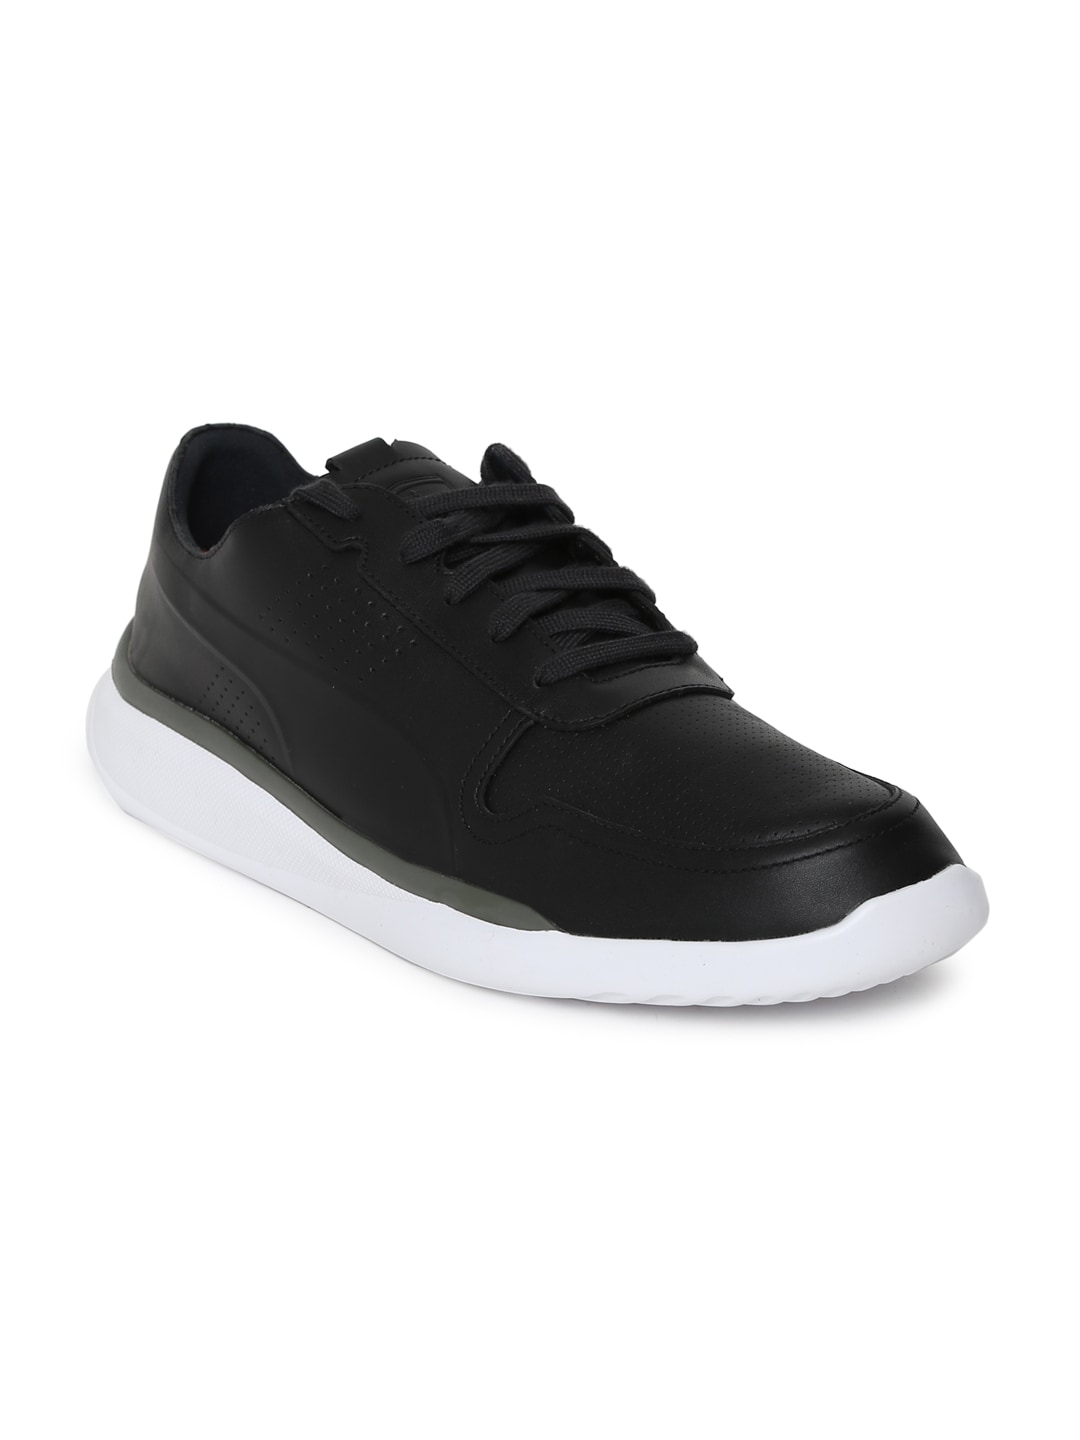 1acc2f728ff 917 Lo Fun Pack Black Puma - Buy 917 Lo Fun Pack Black Puma online in India